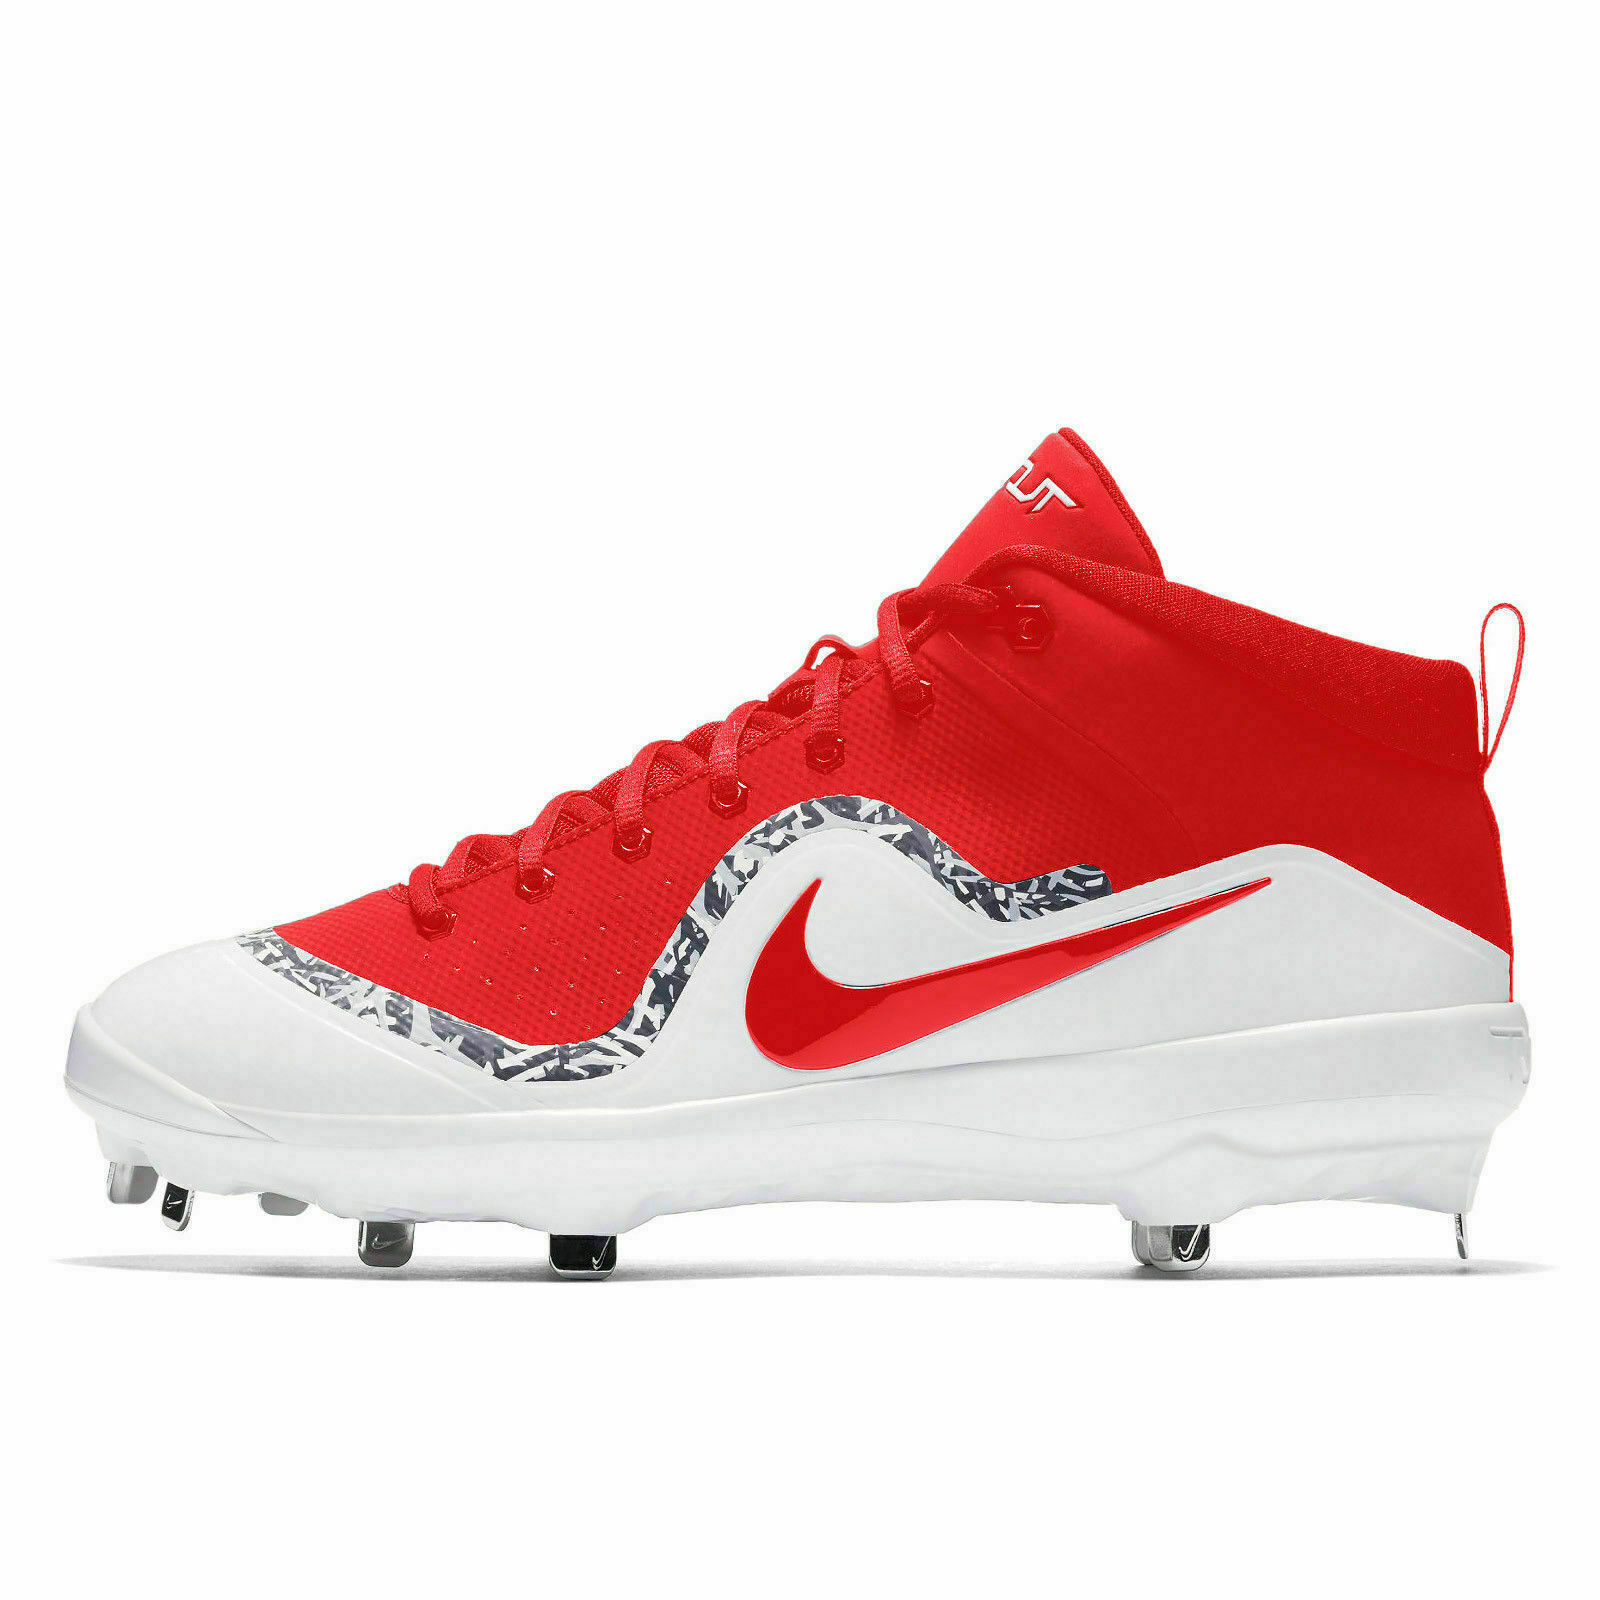 info for 017dd 0f521 57. 57. Previous. Nike Mens Force Air Trout 4 Pro Metal Mid 11.5 Red Baseball  Cleats 917920 668